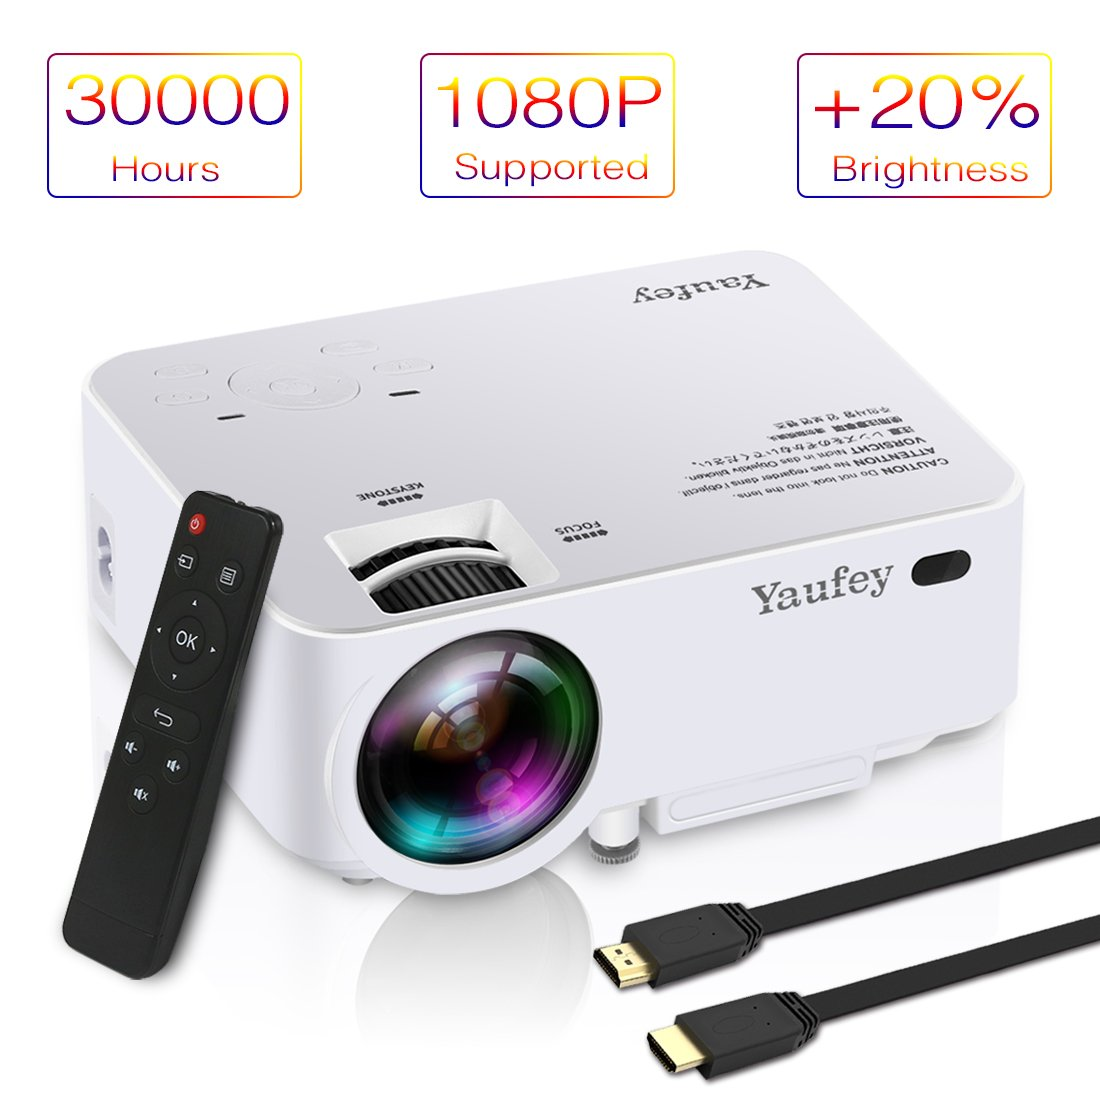 Laptop Projector, Yaufey Digital Video Projector Support 1080P for Home Cinema TV Laptop Game iPhone Android Smartphone with HDMI Cable (2018 Upgraded Version)